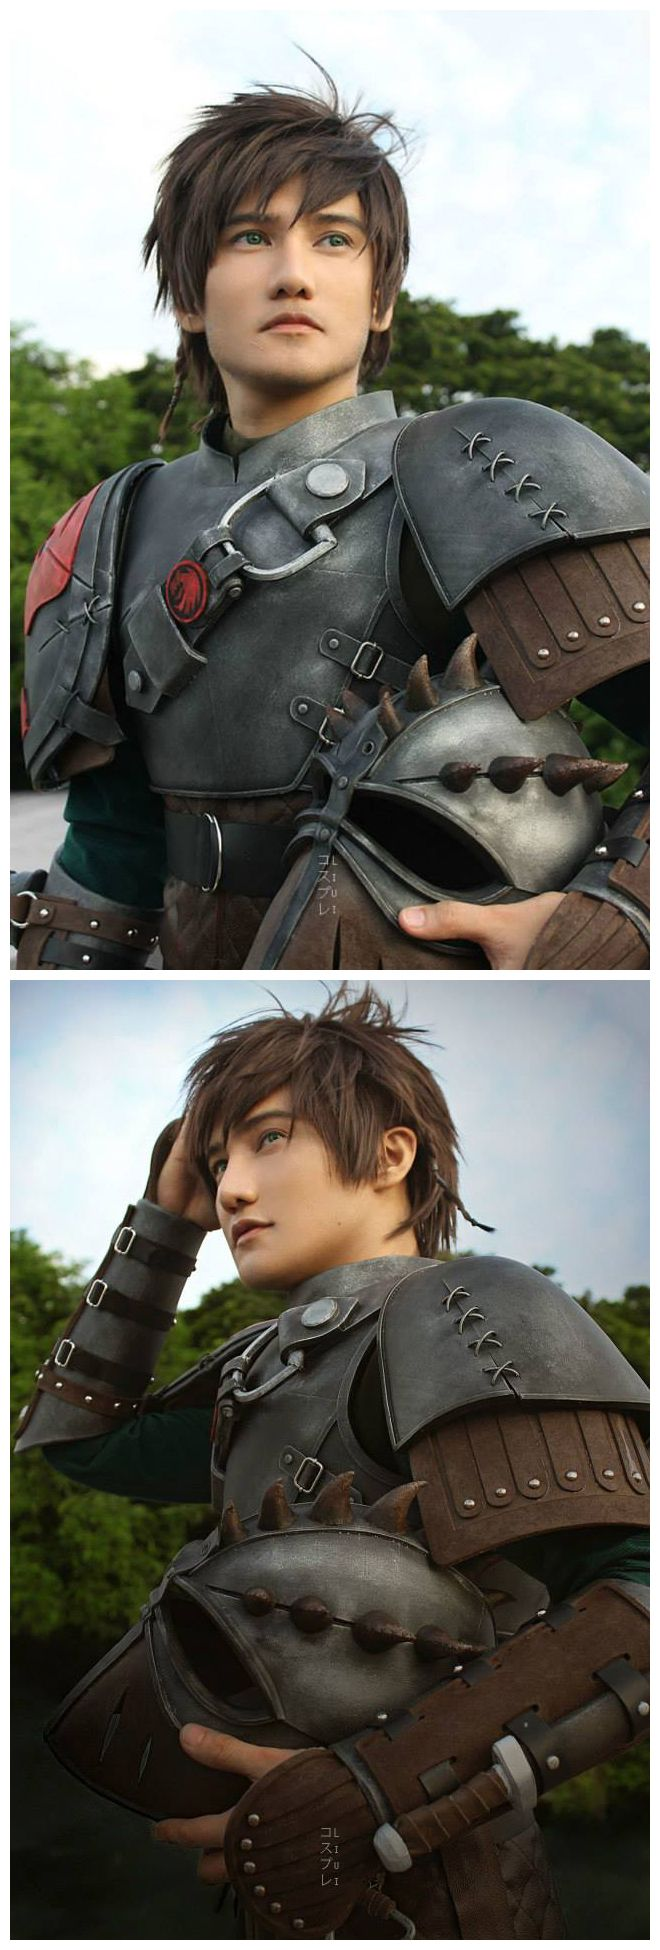 Hiccup (How To Train Your Dragon 2) Cosplay. this is one of the best cosplays I've ever seen.